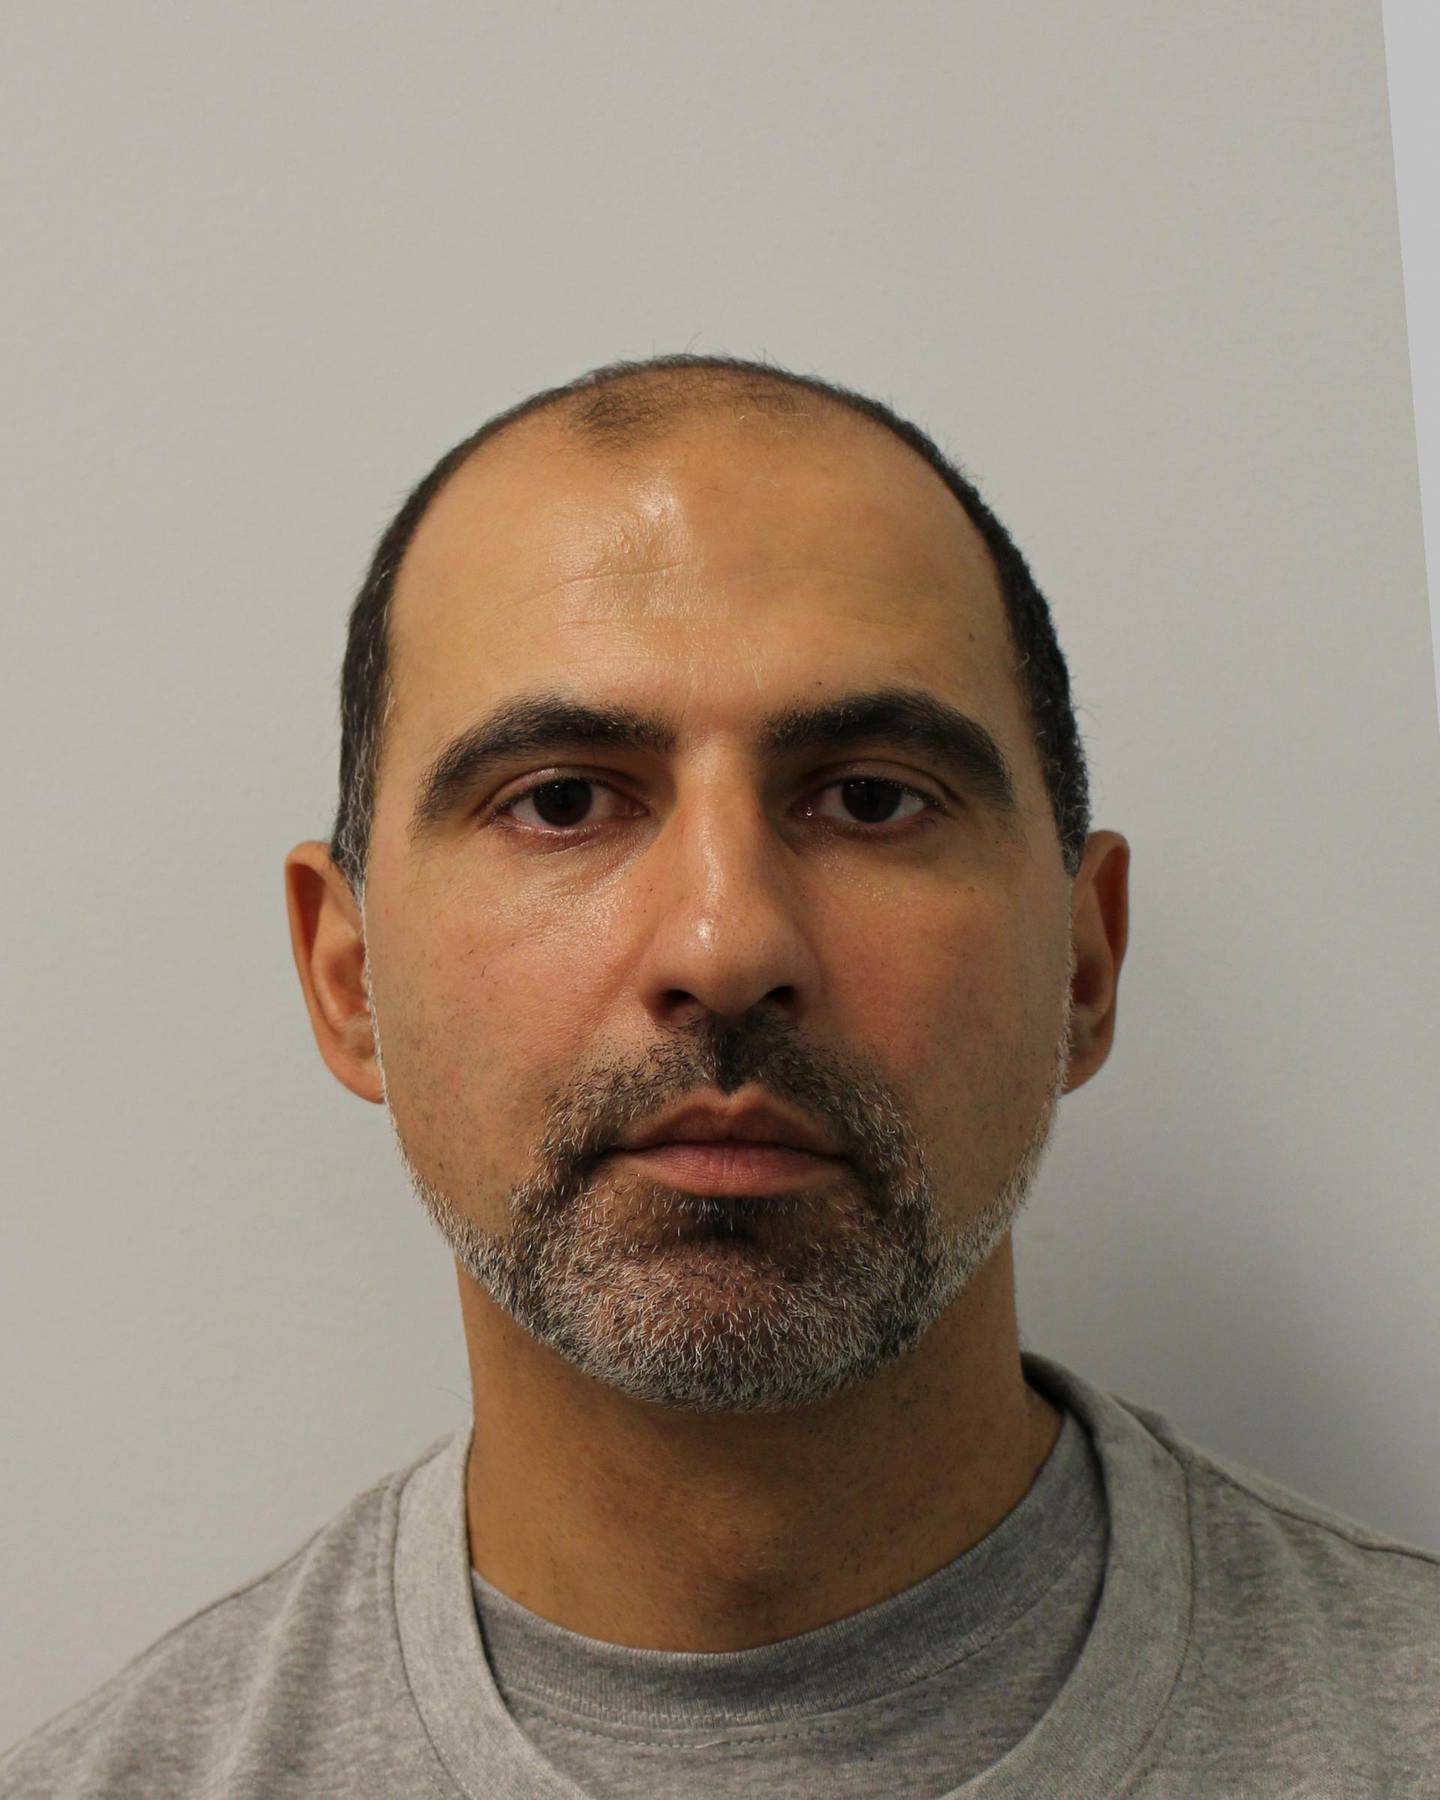 Quissem Medouni is seen in an undated booking photograph handed out by the Metropolitan police in London, Britain. Kouider, along with his partner Sabrina Kouider, was sentenced to life for torturing and murdering their nanny Sophie Lionnet at the Old Bailey in London June 26, 2018. Metroploitan Police handout via REUTERS NO RESALES. NO ARCHIVES  THIS IMAGE HAS BEEN SUPPLIED BY A THIRD PARTY. IT IS DISTRIBUTED, EXACTLY AS RECEIVED BY REUTERS, AS A SERVICE TO CLIENTS